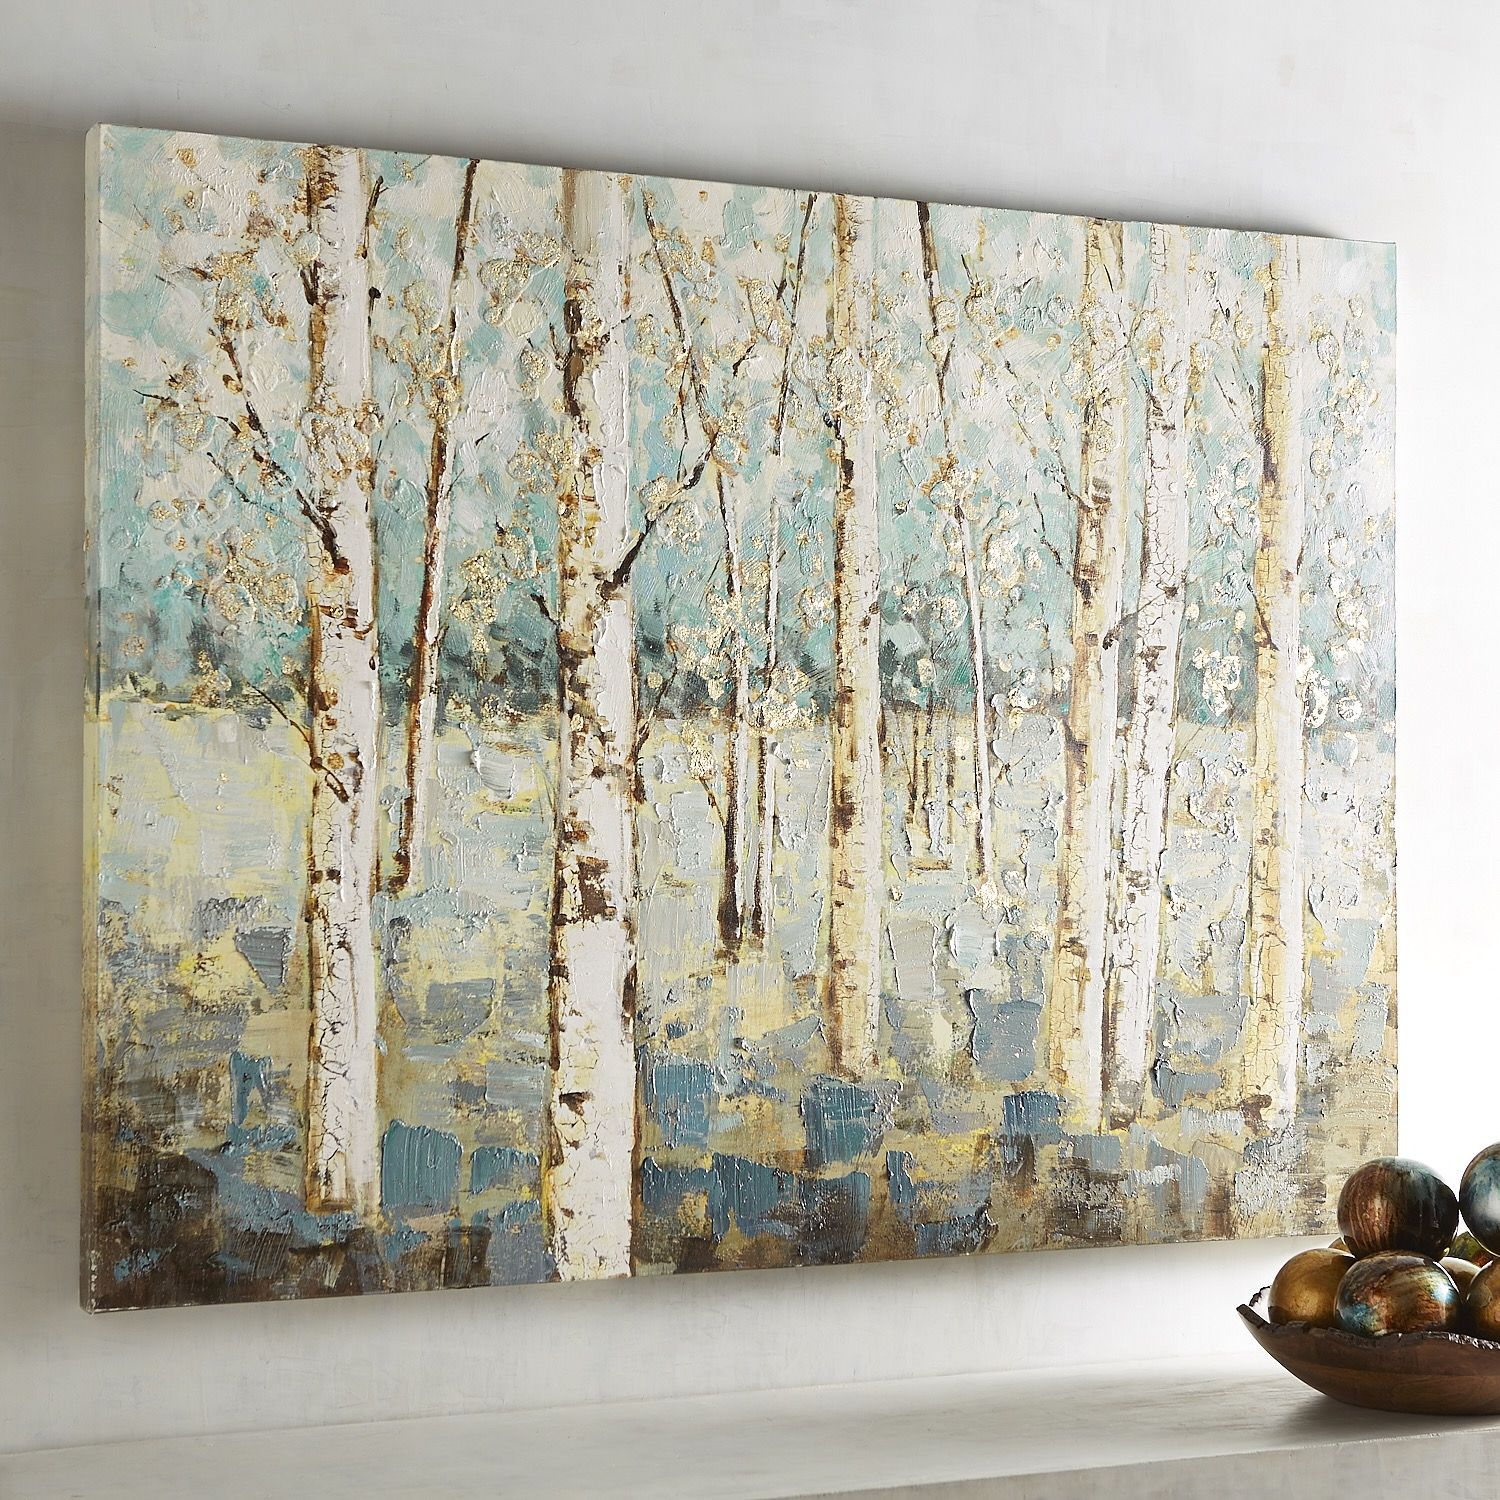 Shades of Blue Birch Tree Wall Art | Products | Pinterest ...